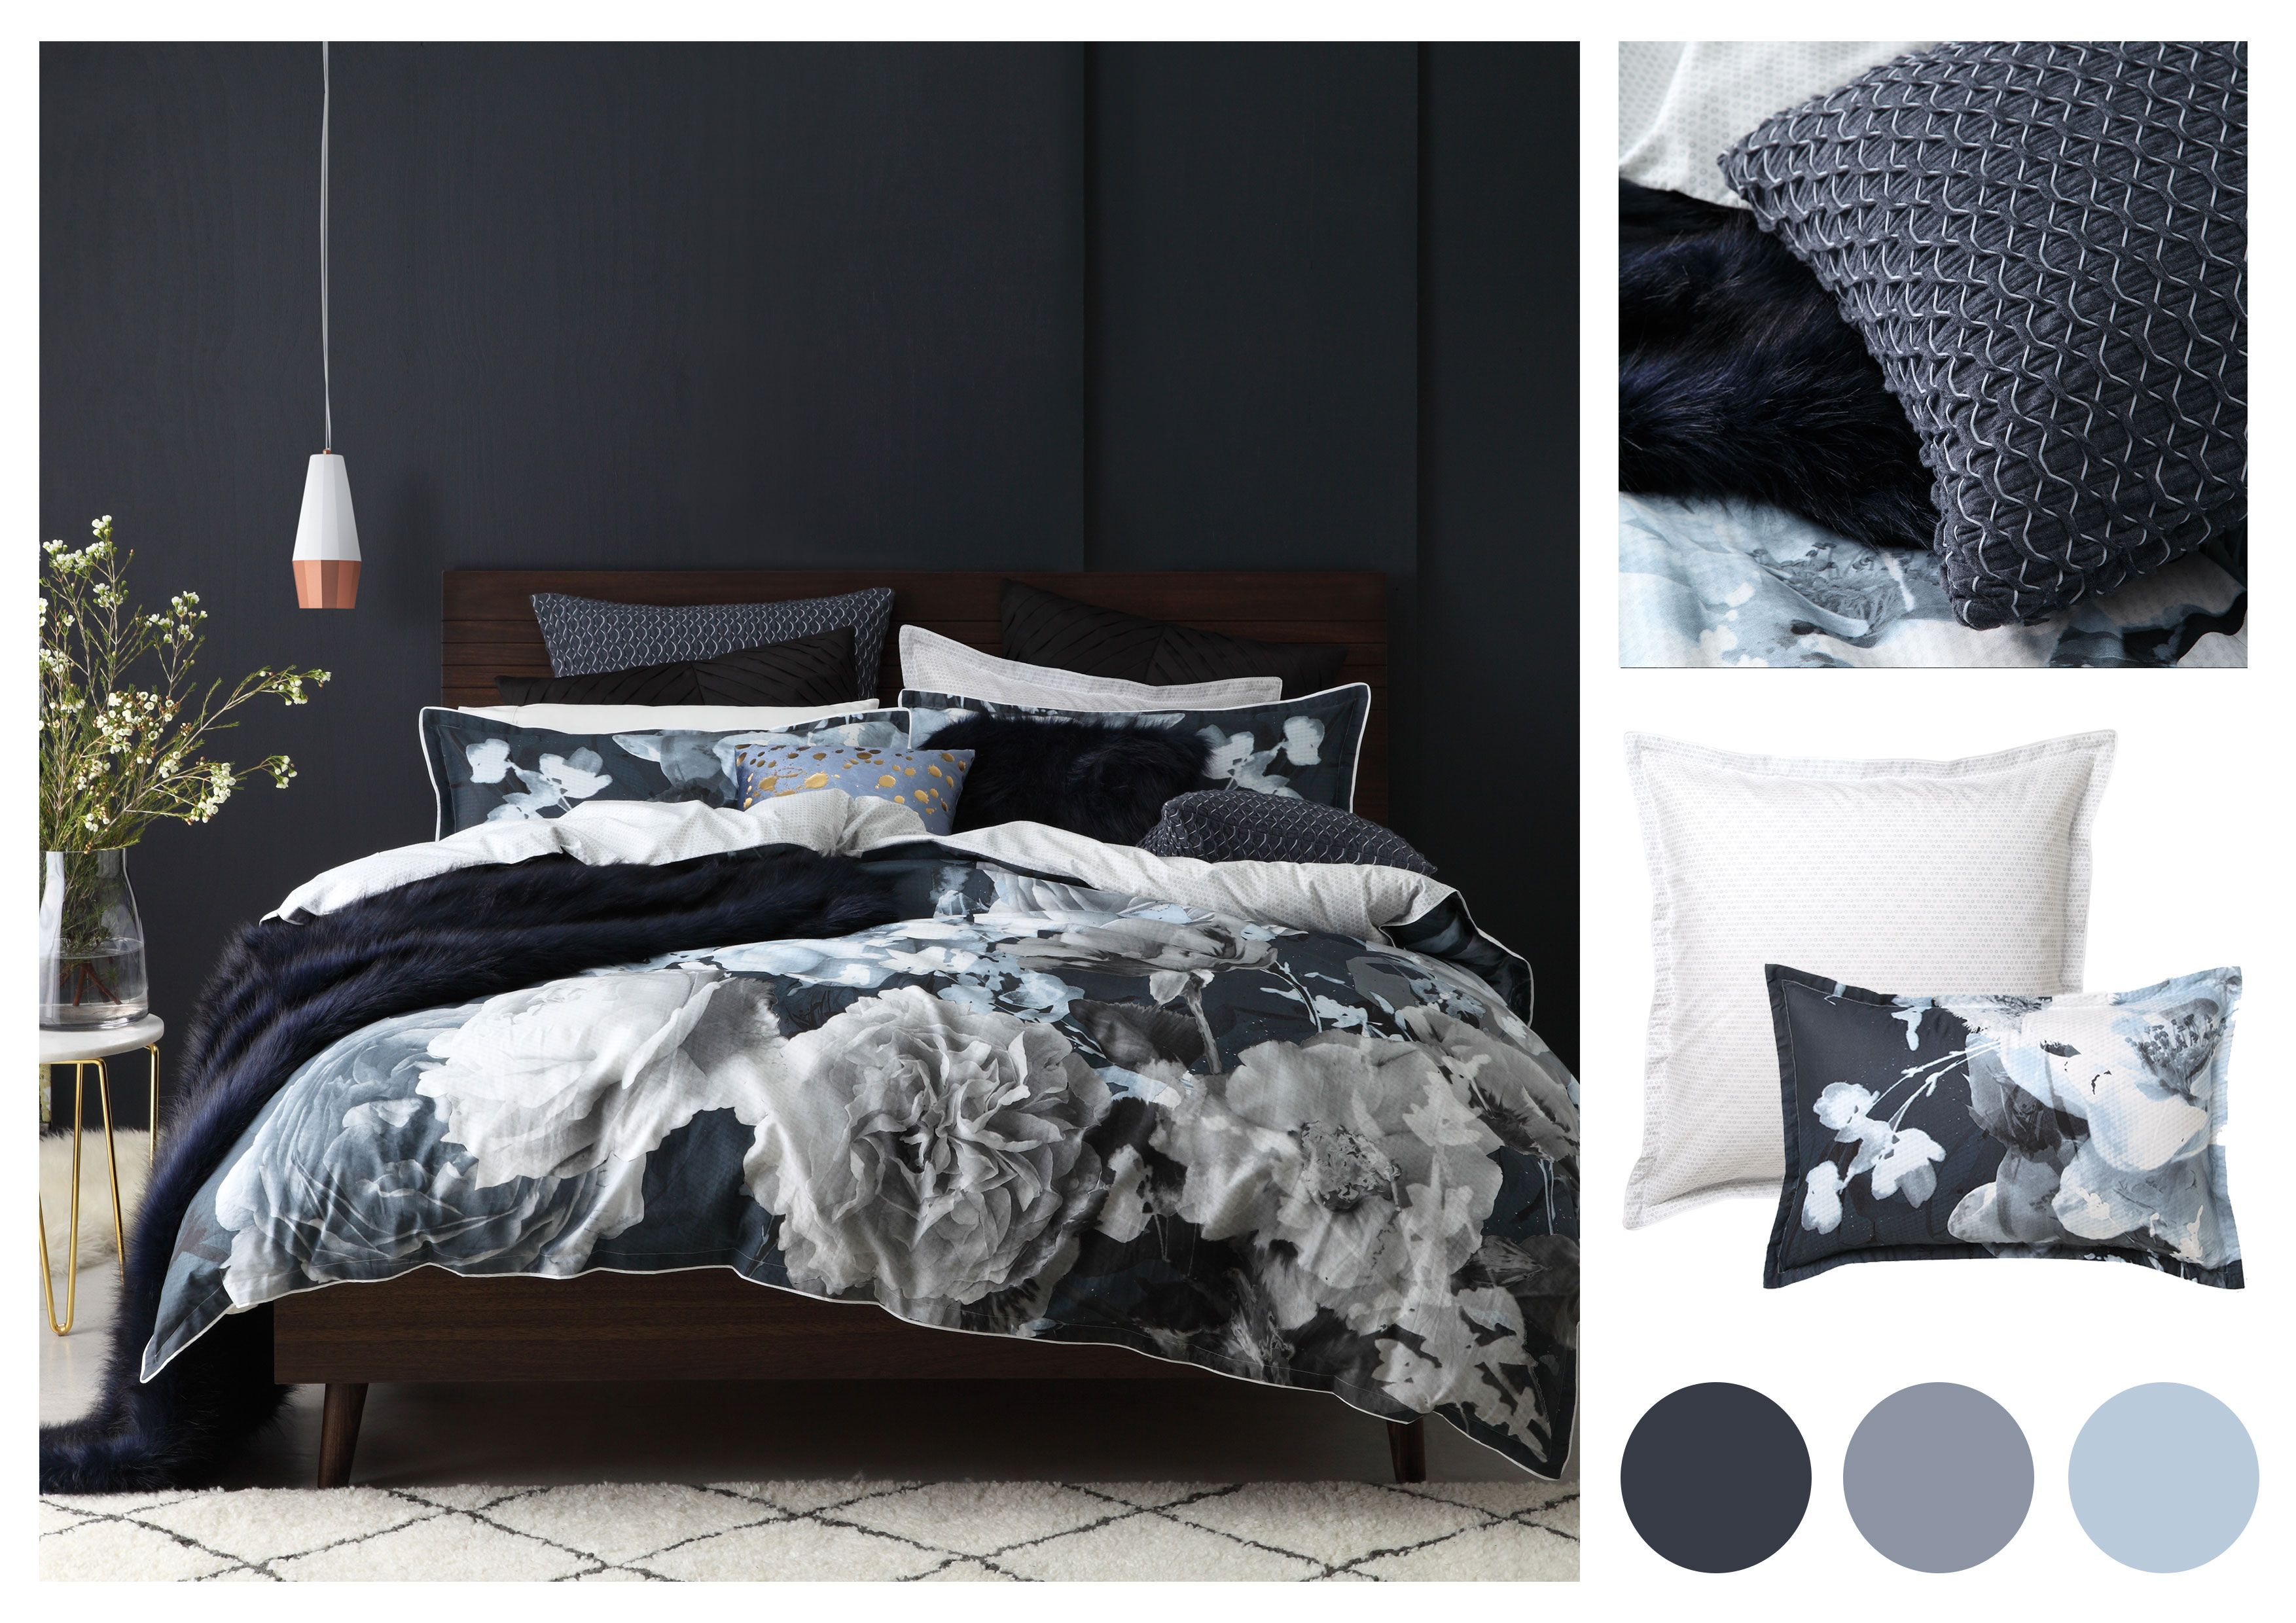 Introducing The Tess Charcoal Duvet Cover Set By Logan And Mason This Duvet Cover Set Features Large Muted Floral Arr Duvet Cover Sets Duvet Sets Duvet Covers